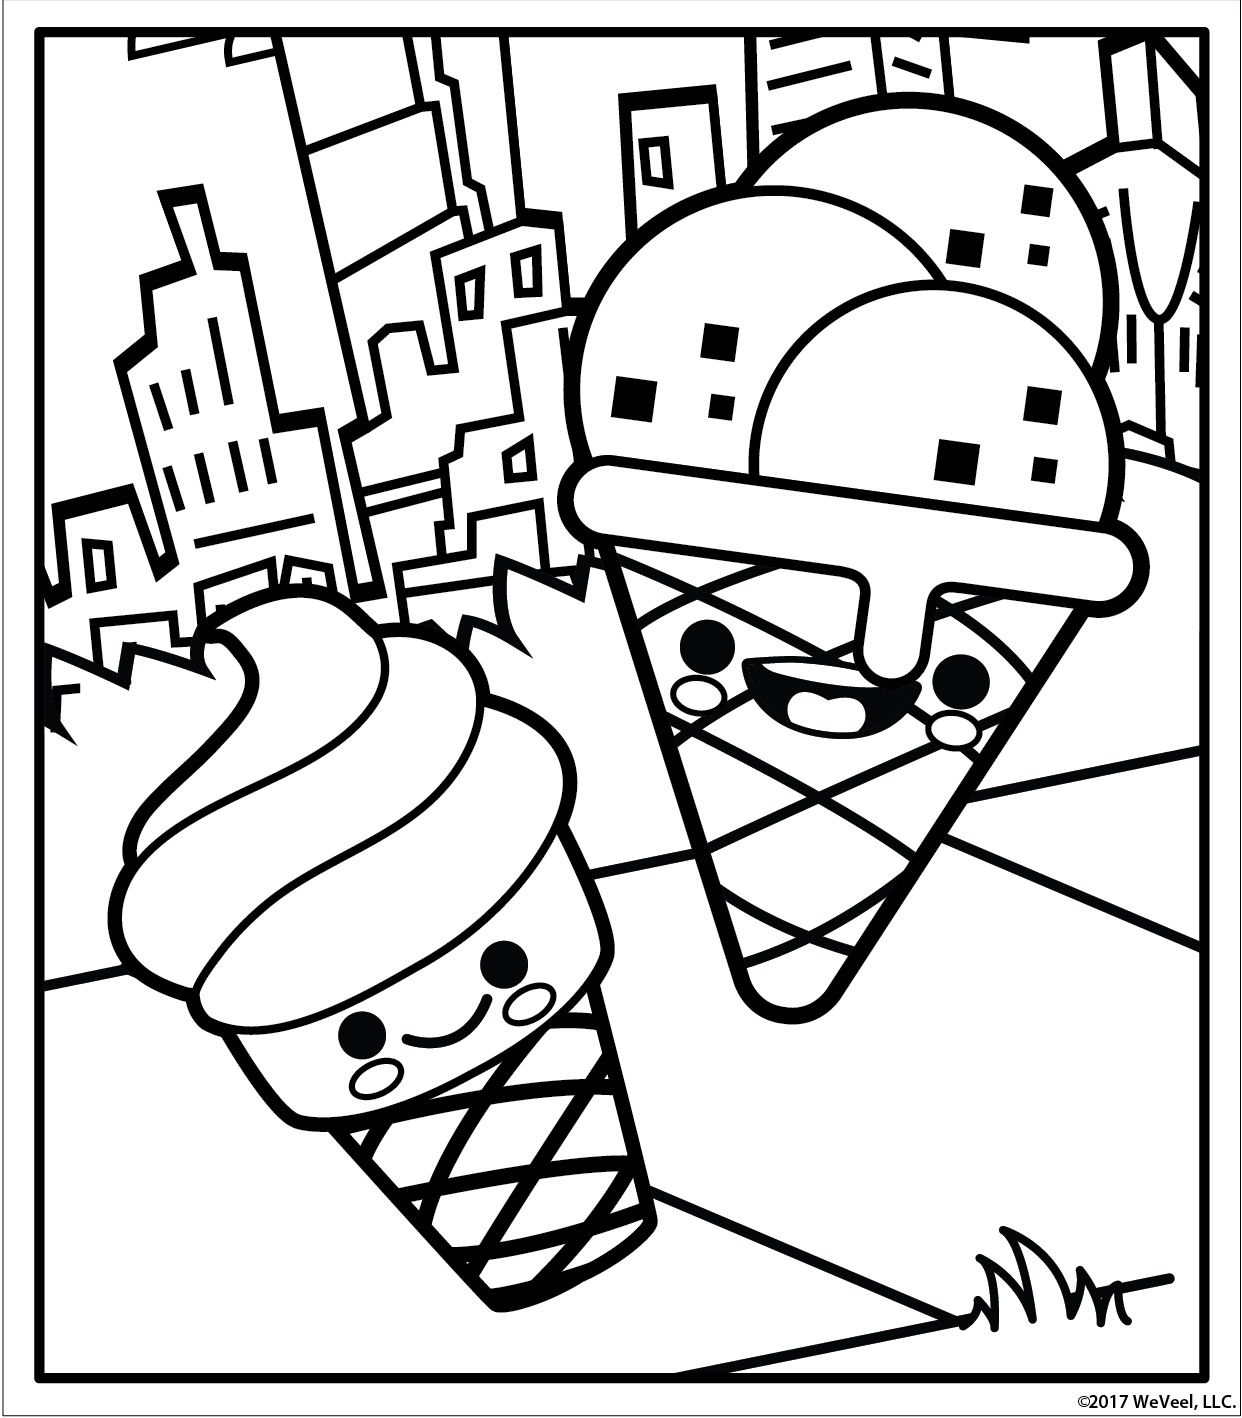 Coloring Pages For Girls Scentos Monster Coloring Pages Shopkins Coloring Pages Free Printable Free Kids Coloring Pages